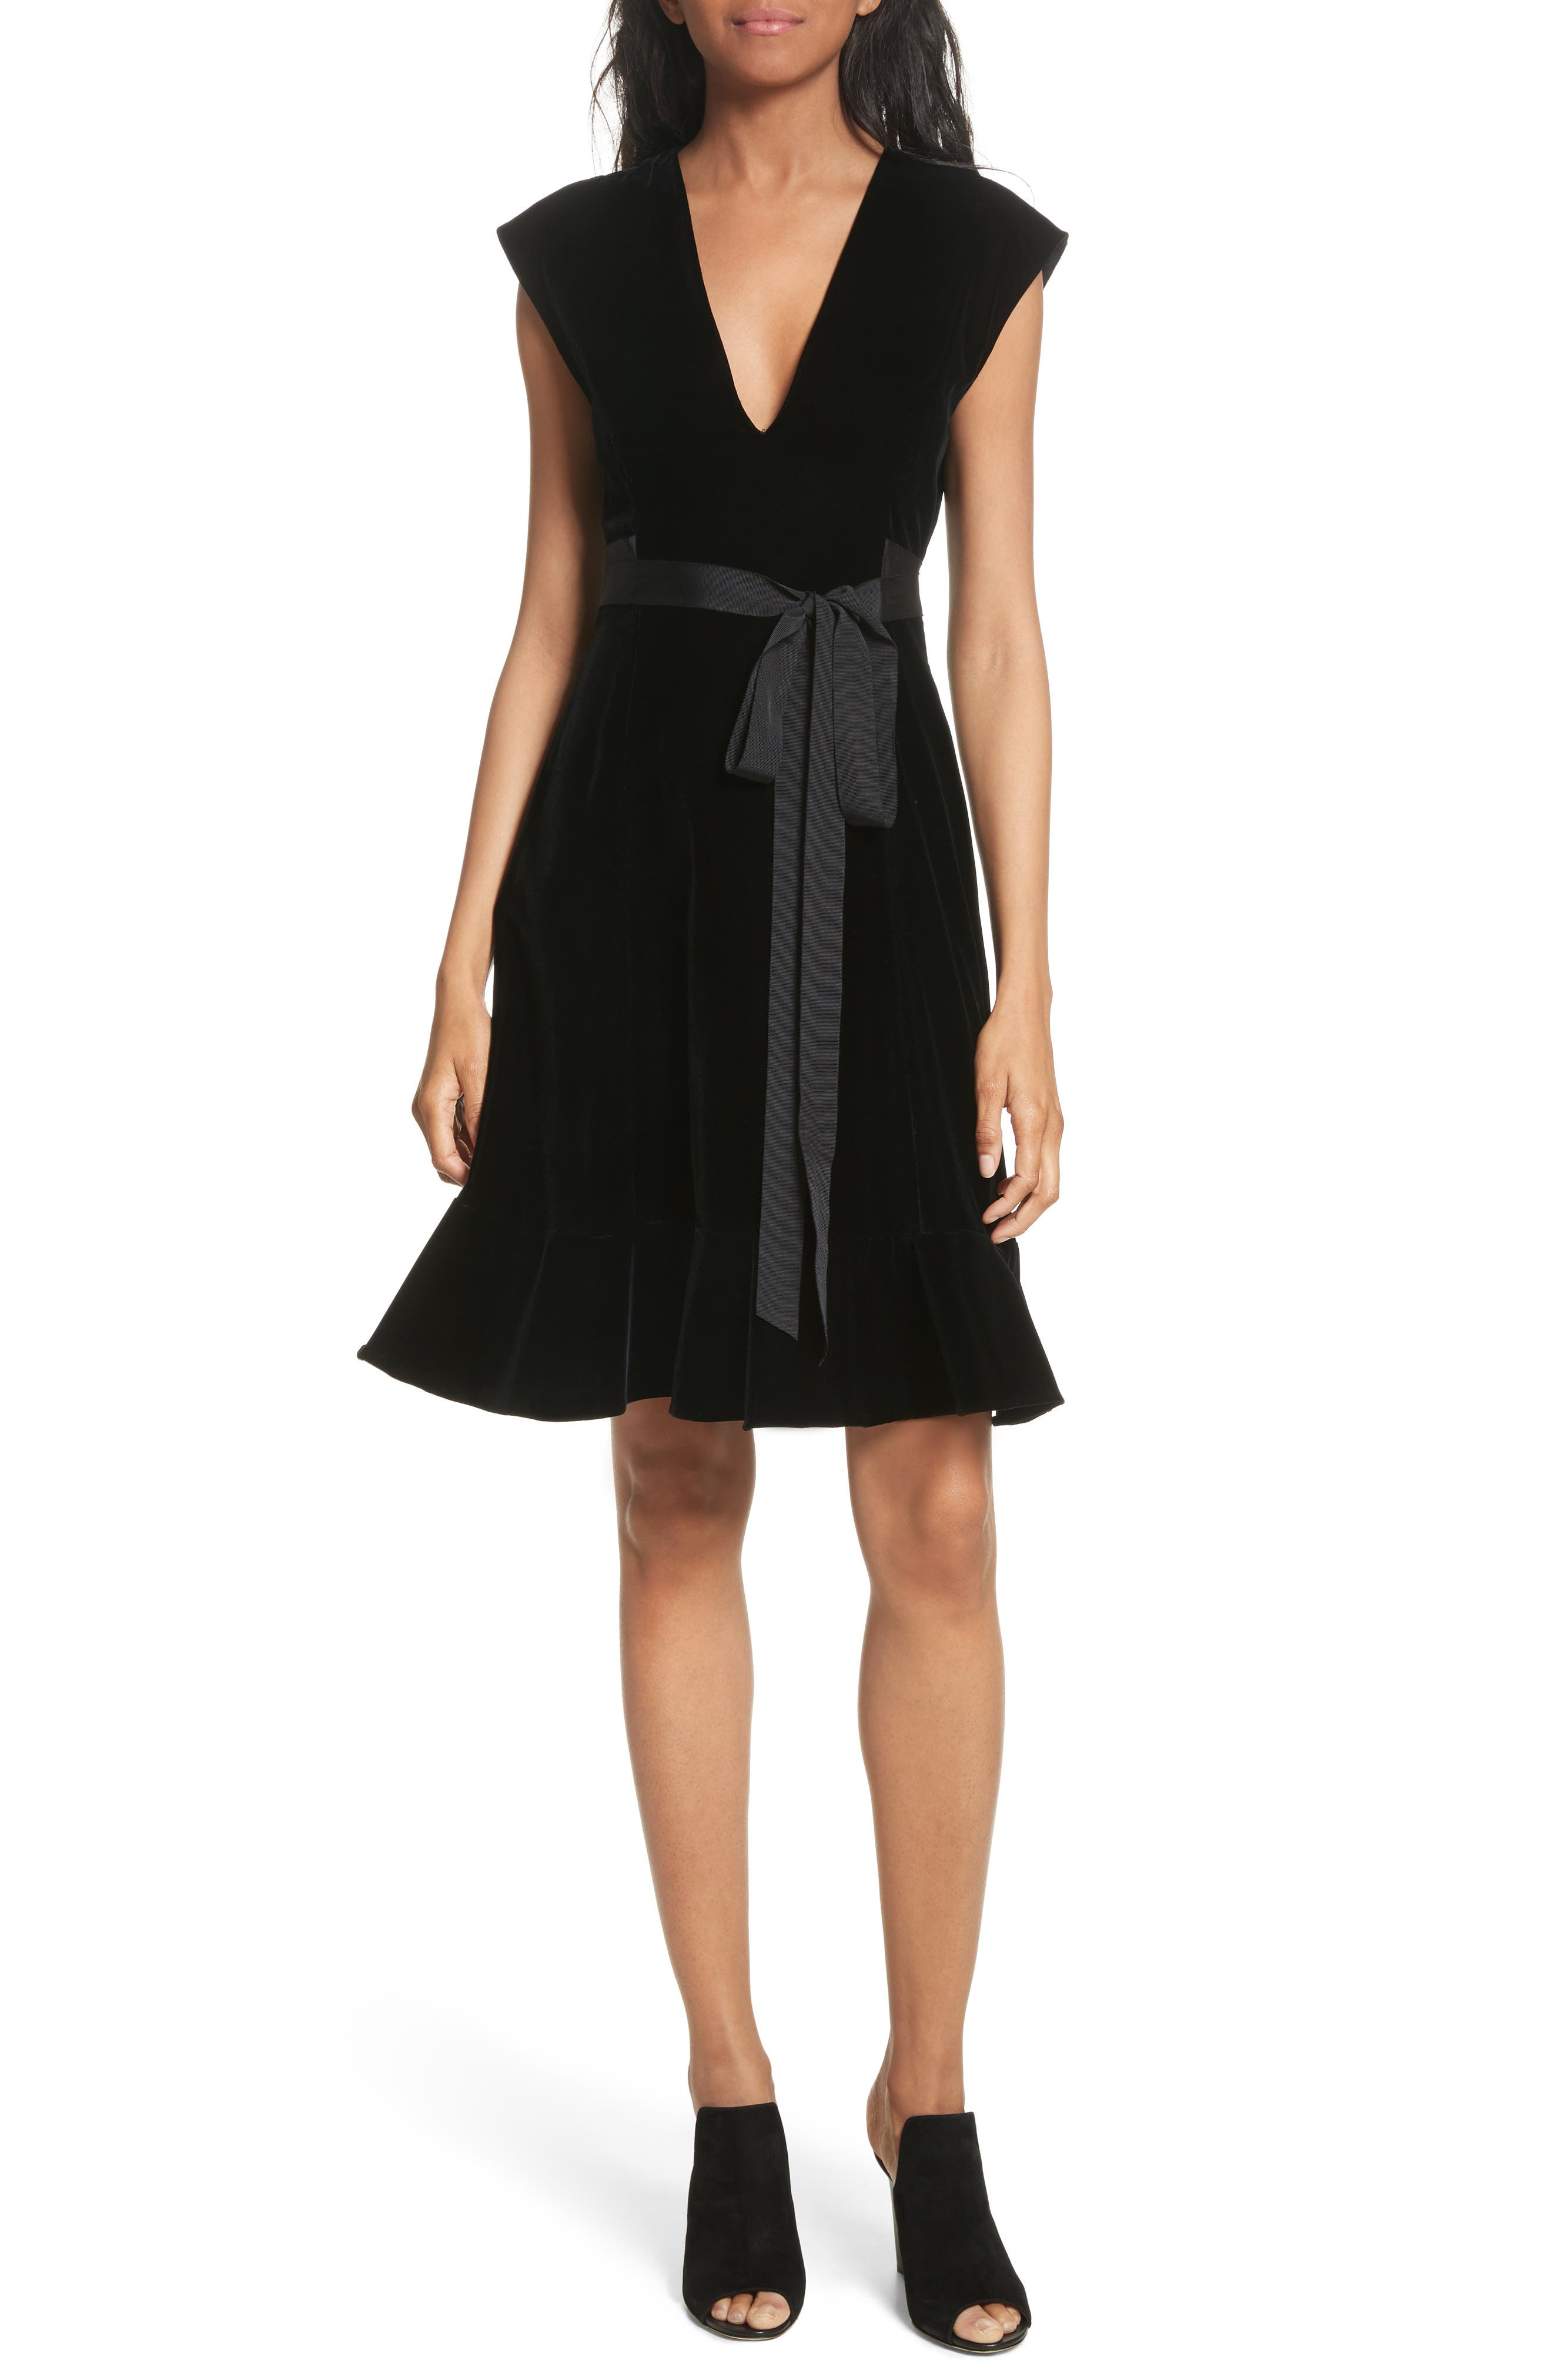 Derek Lam 10 Crosby Velvet Fit & Flare Dress